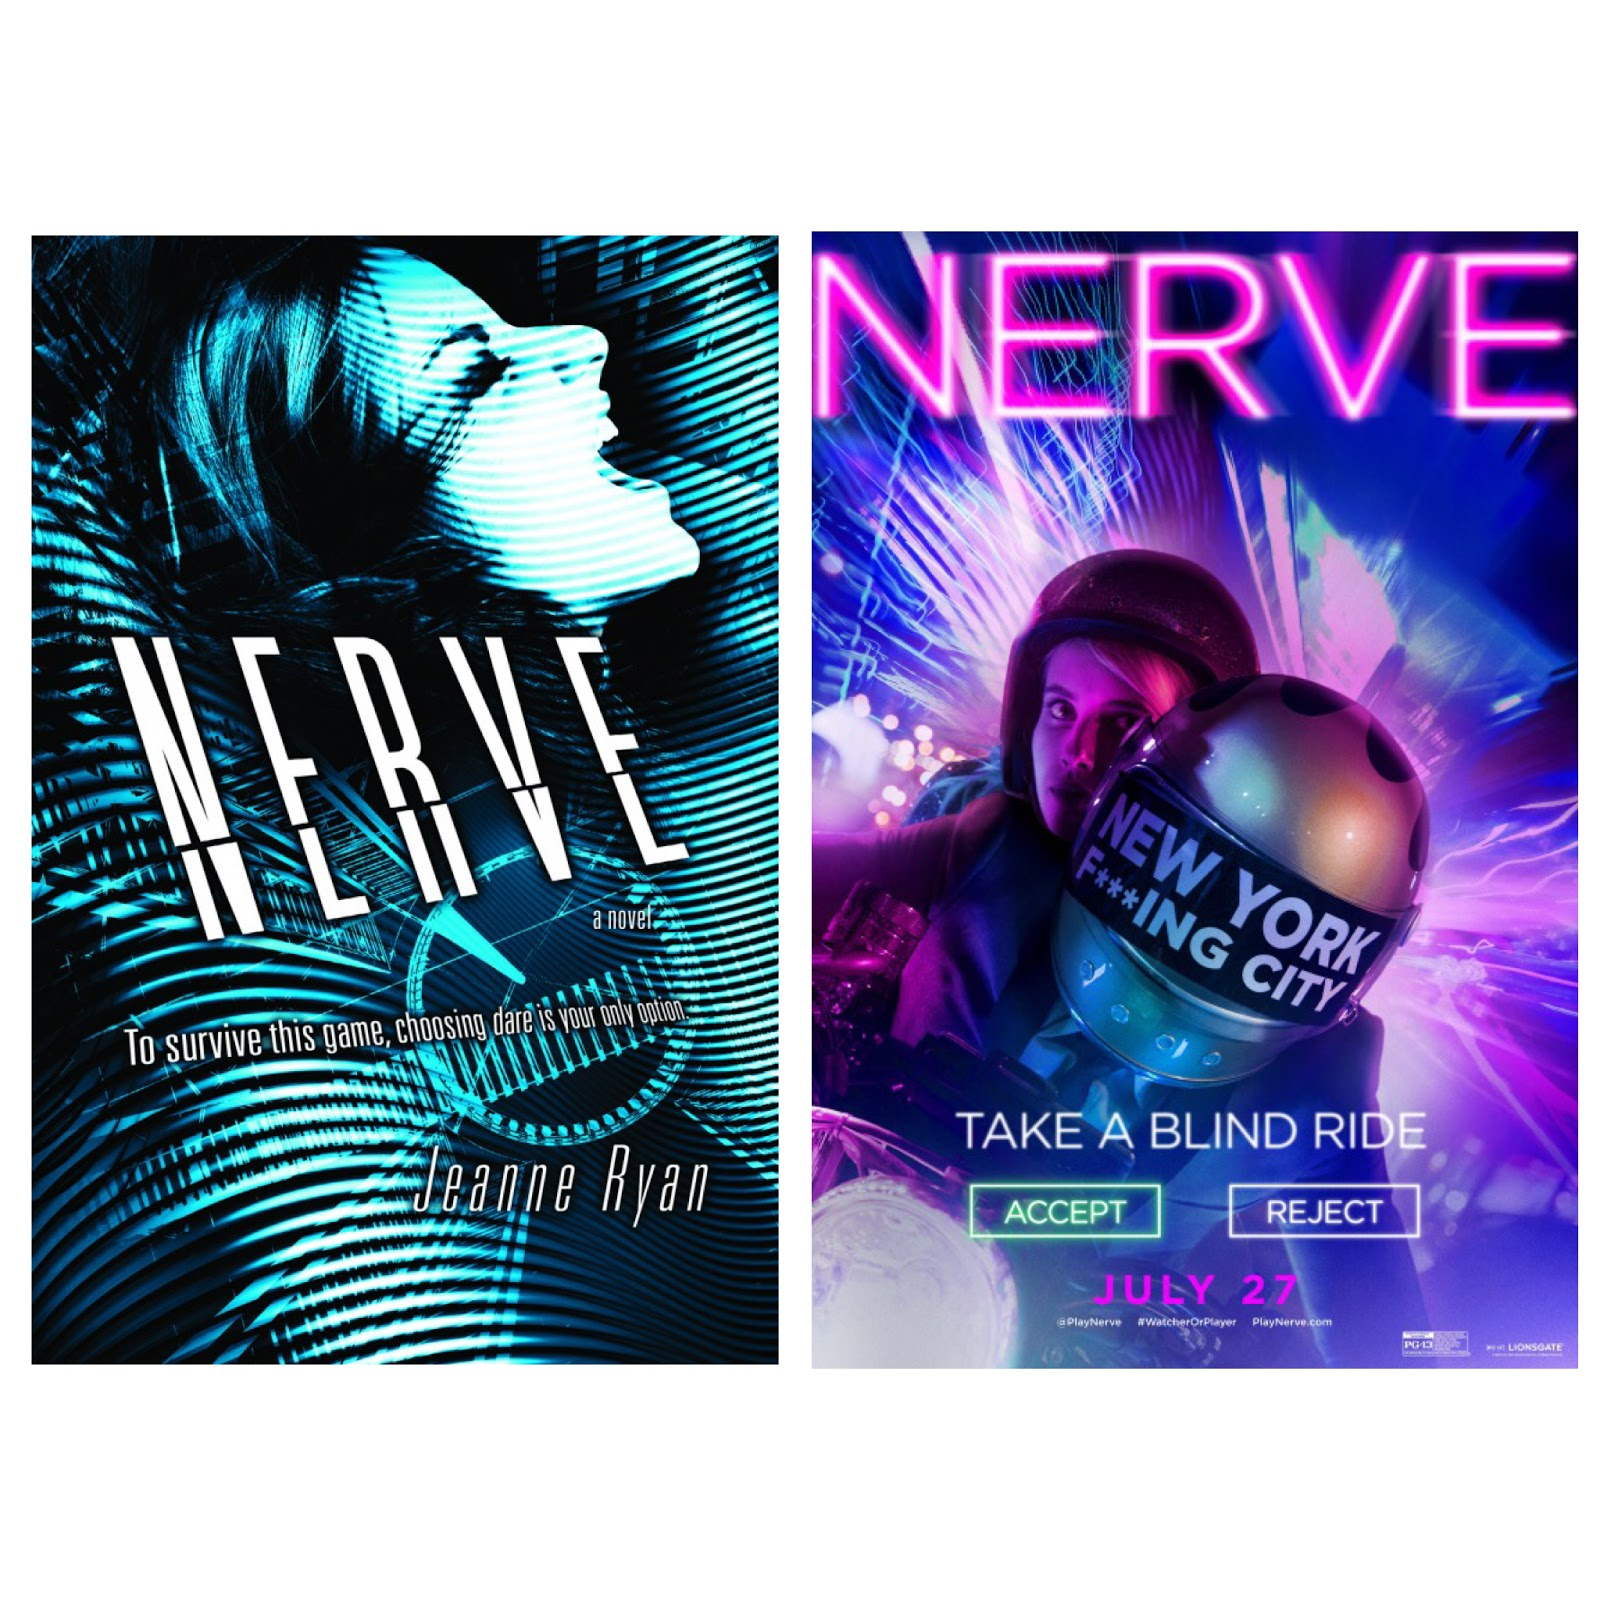 nerve book movie comparison review reads by amanda